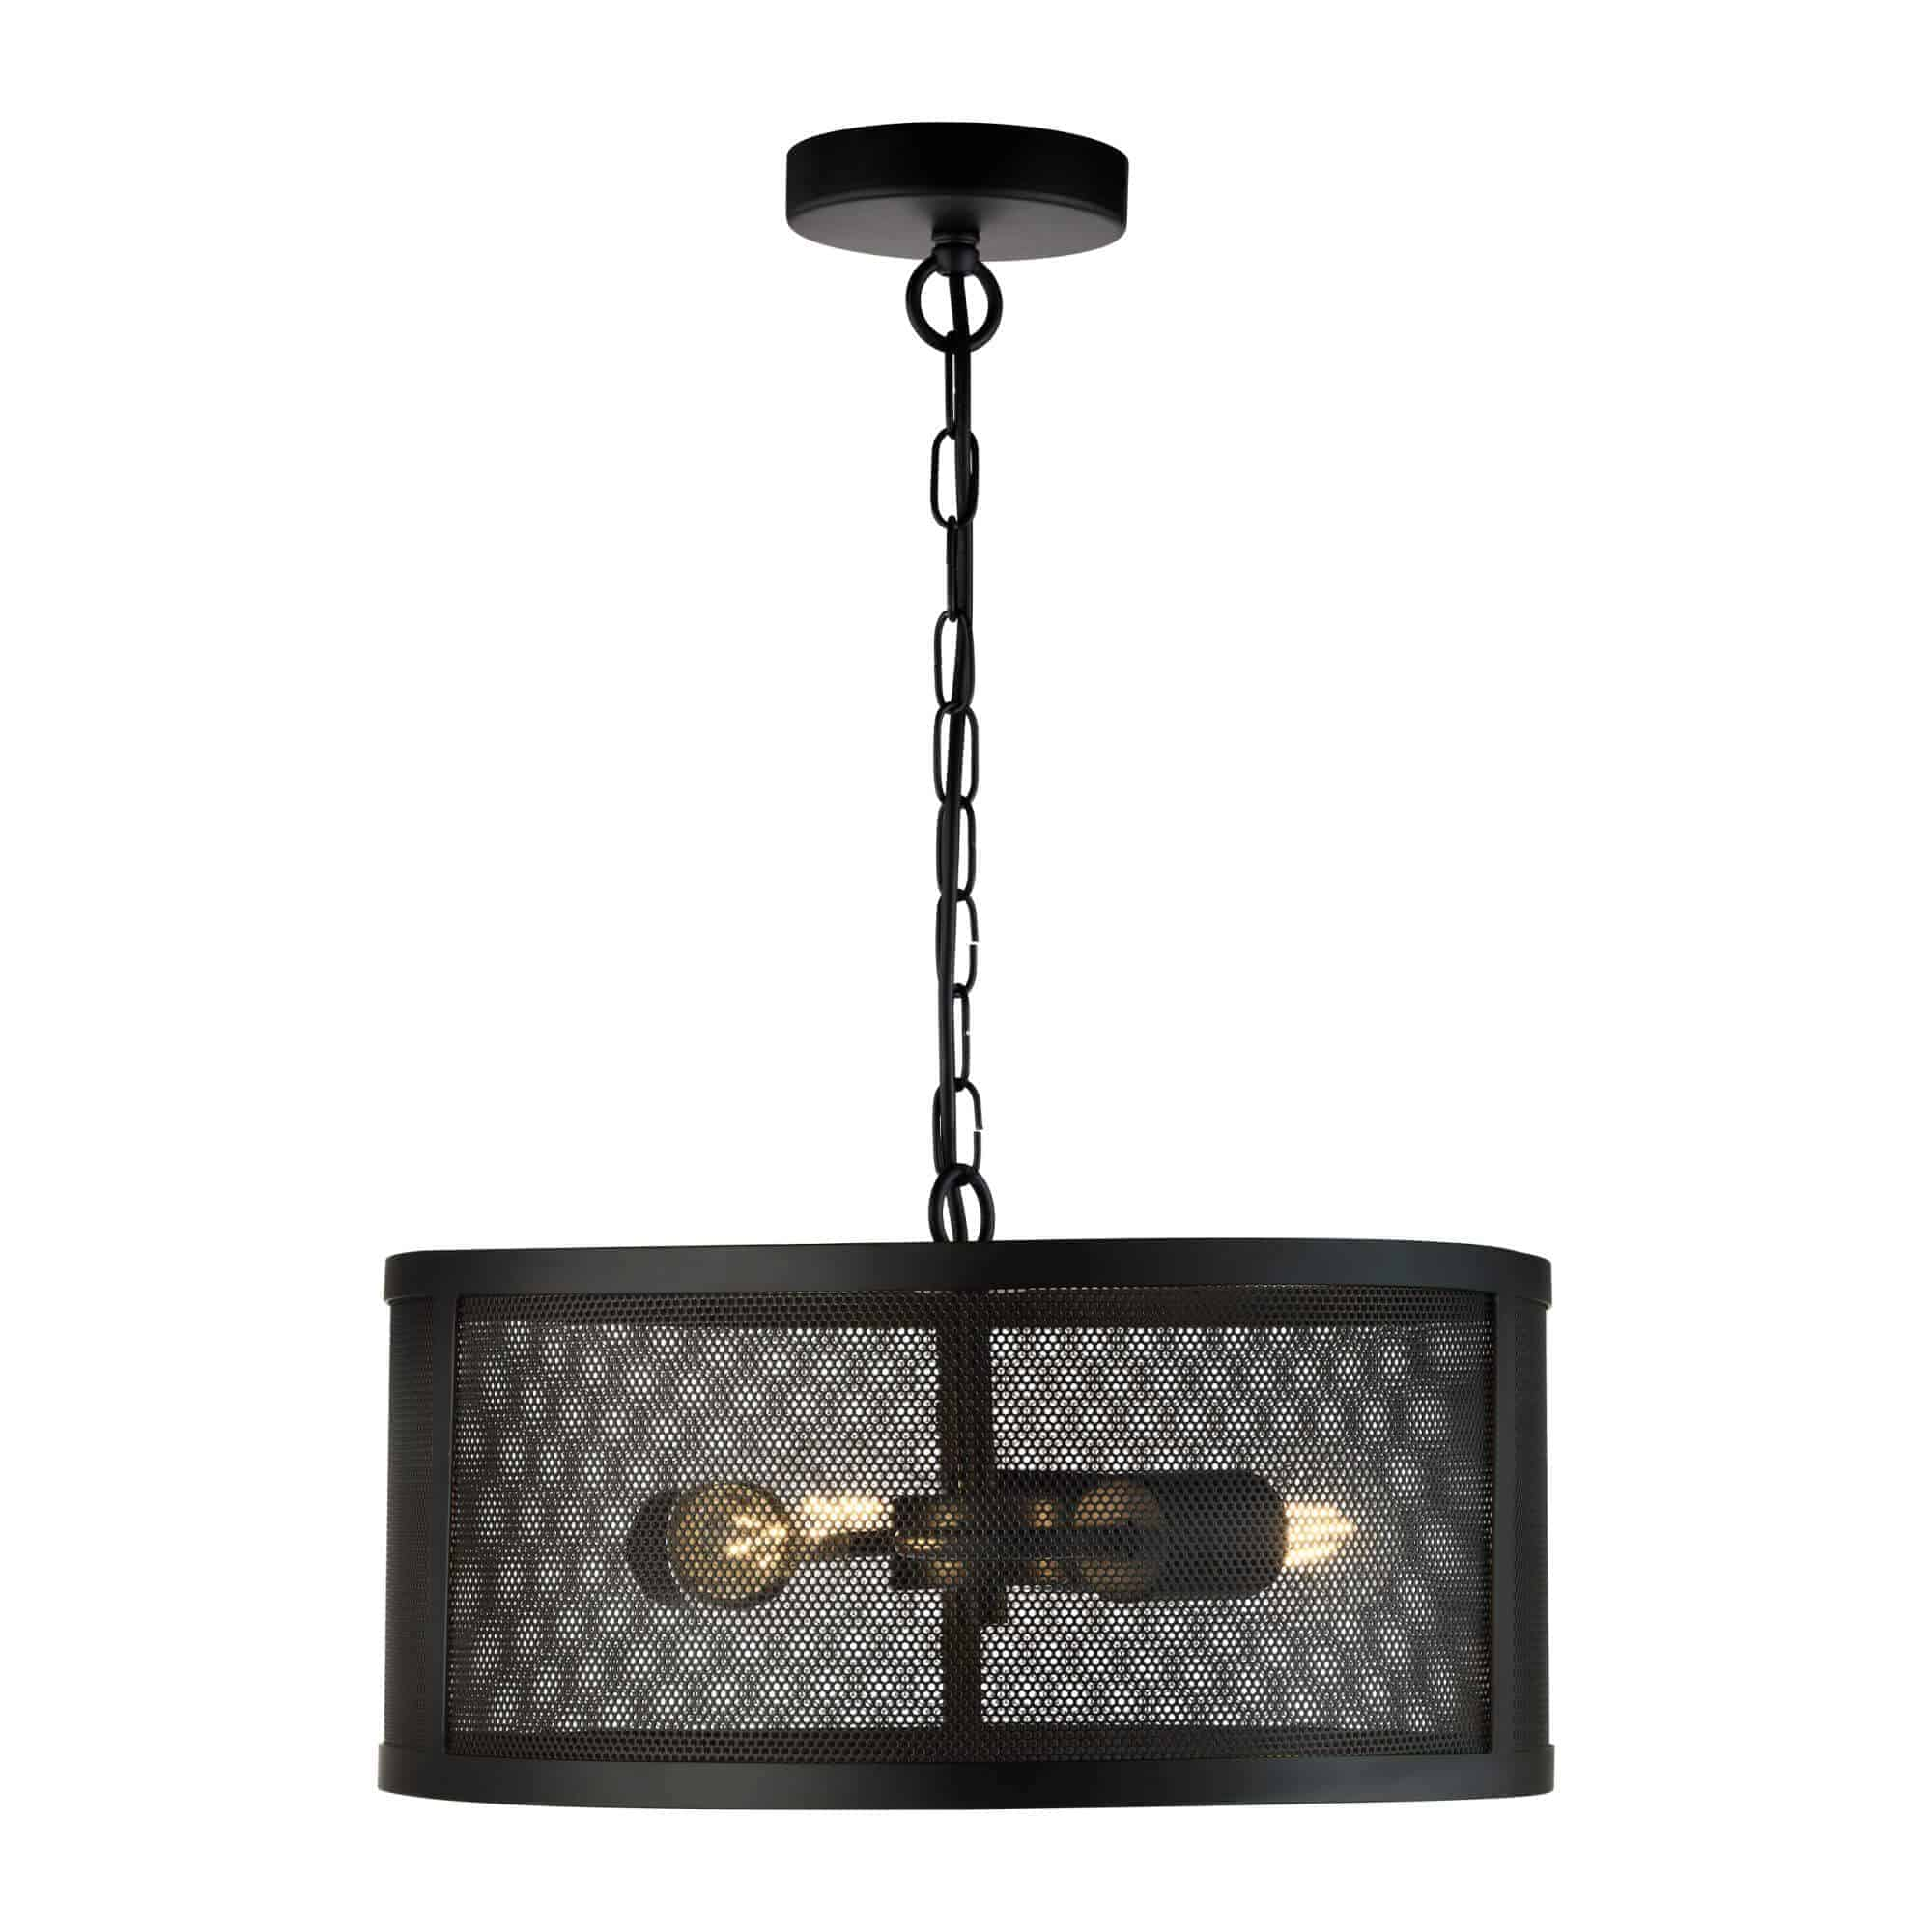 12483-3BK – Searchlight Fishnet 3 Light Drum Pendant Matt Black